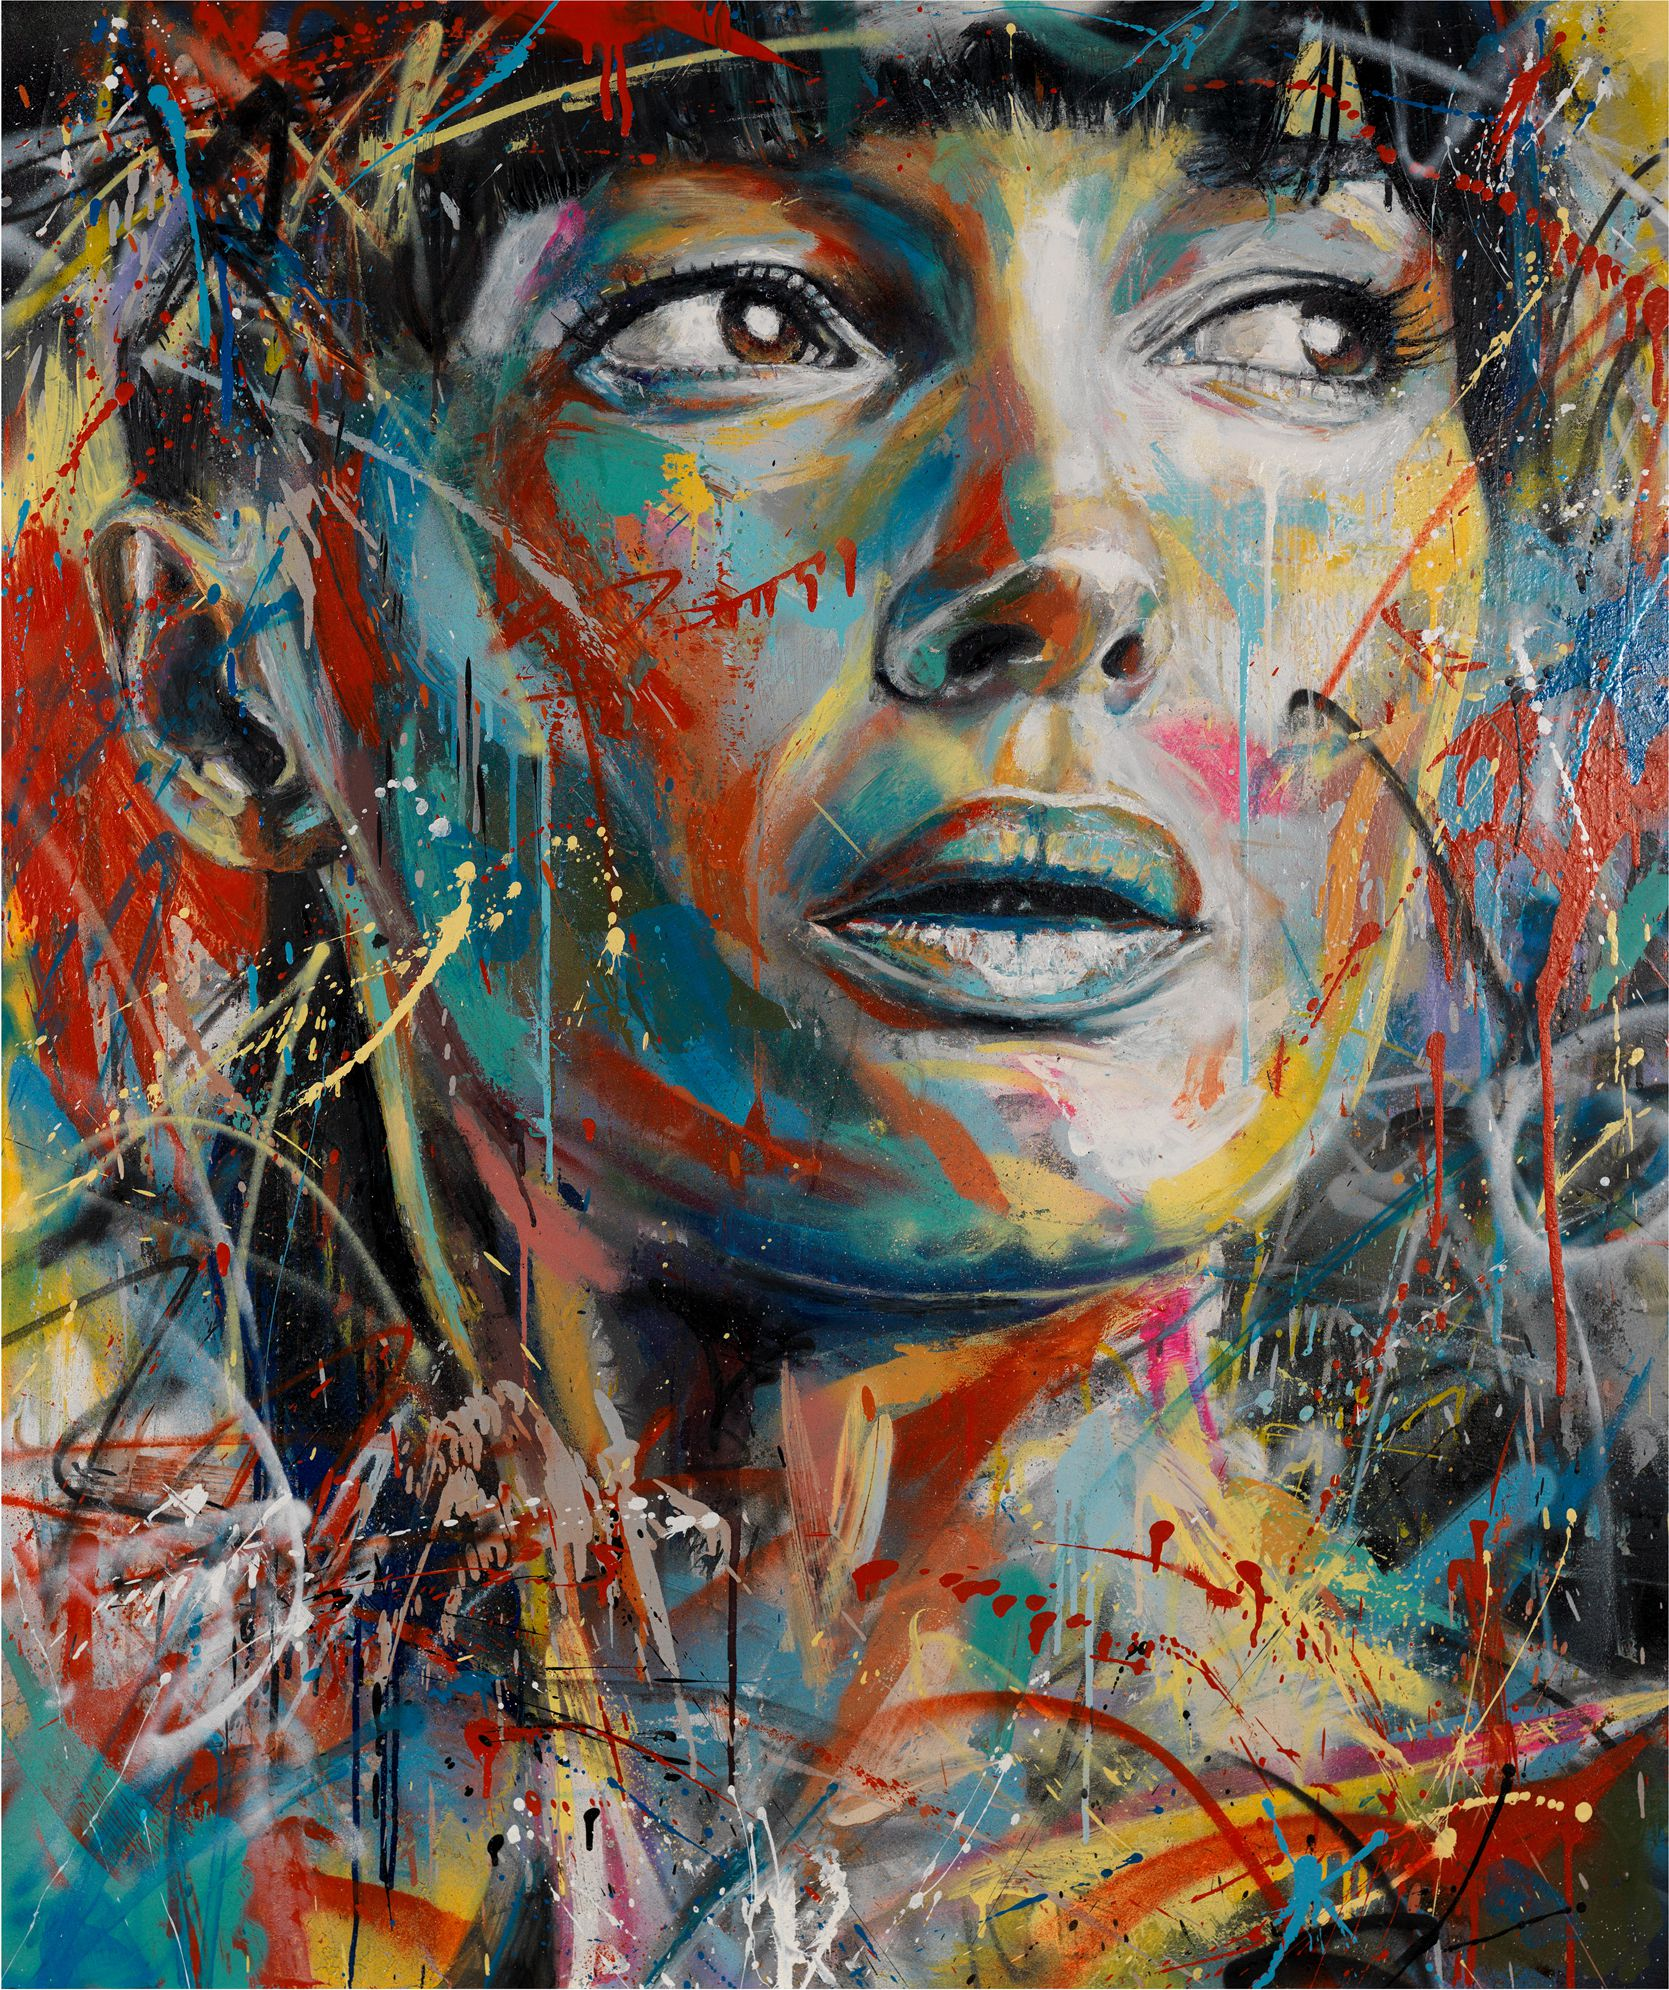 David-Walker-art-illustration 1